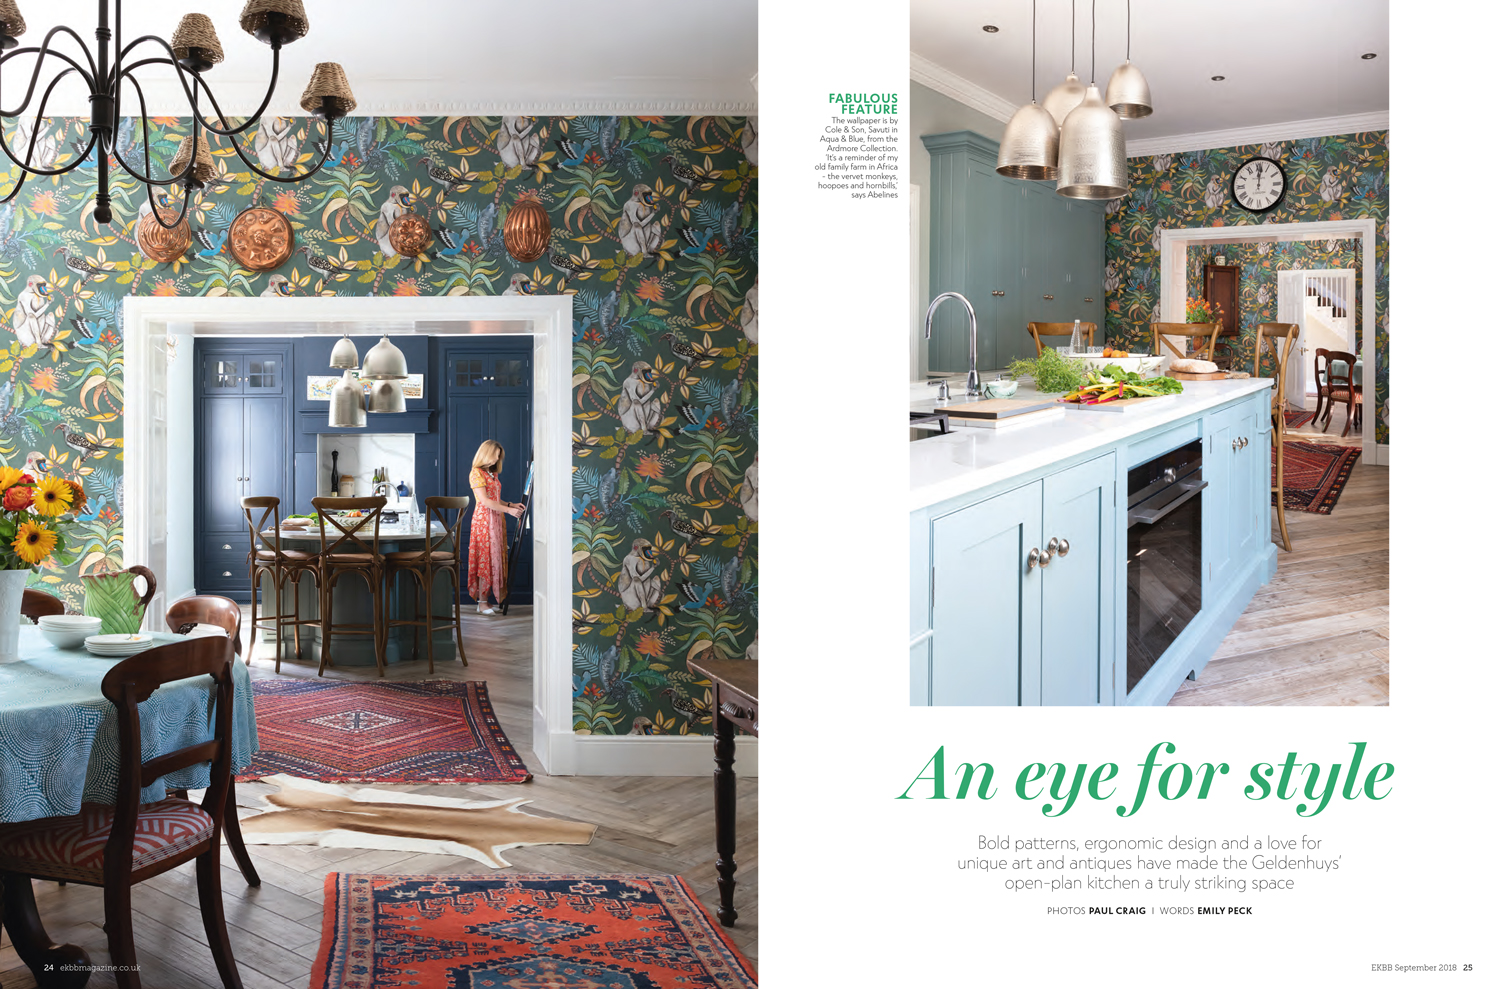 Essential Kitchen Bathroom Bedroom Magazine September 2018 | Paul Craig Interior Photographer